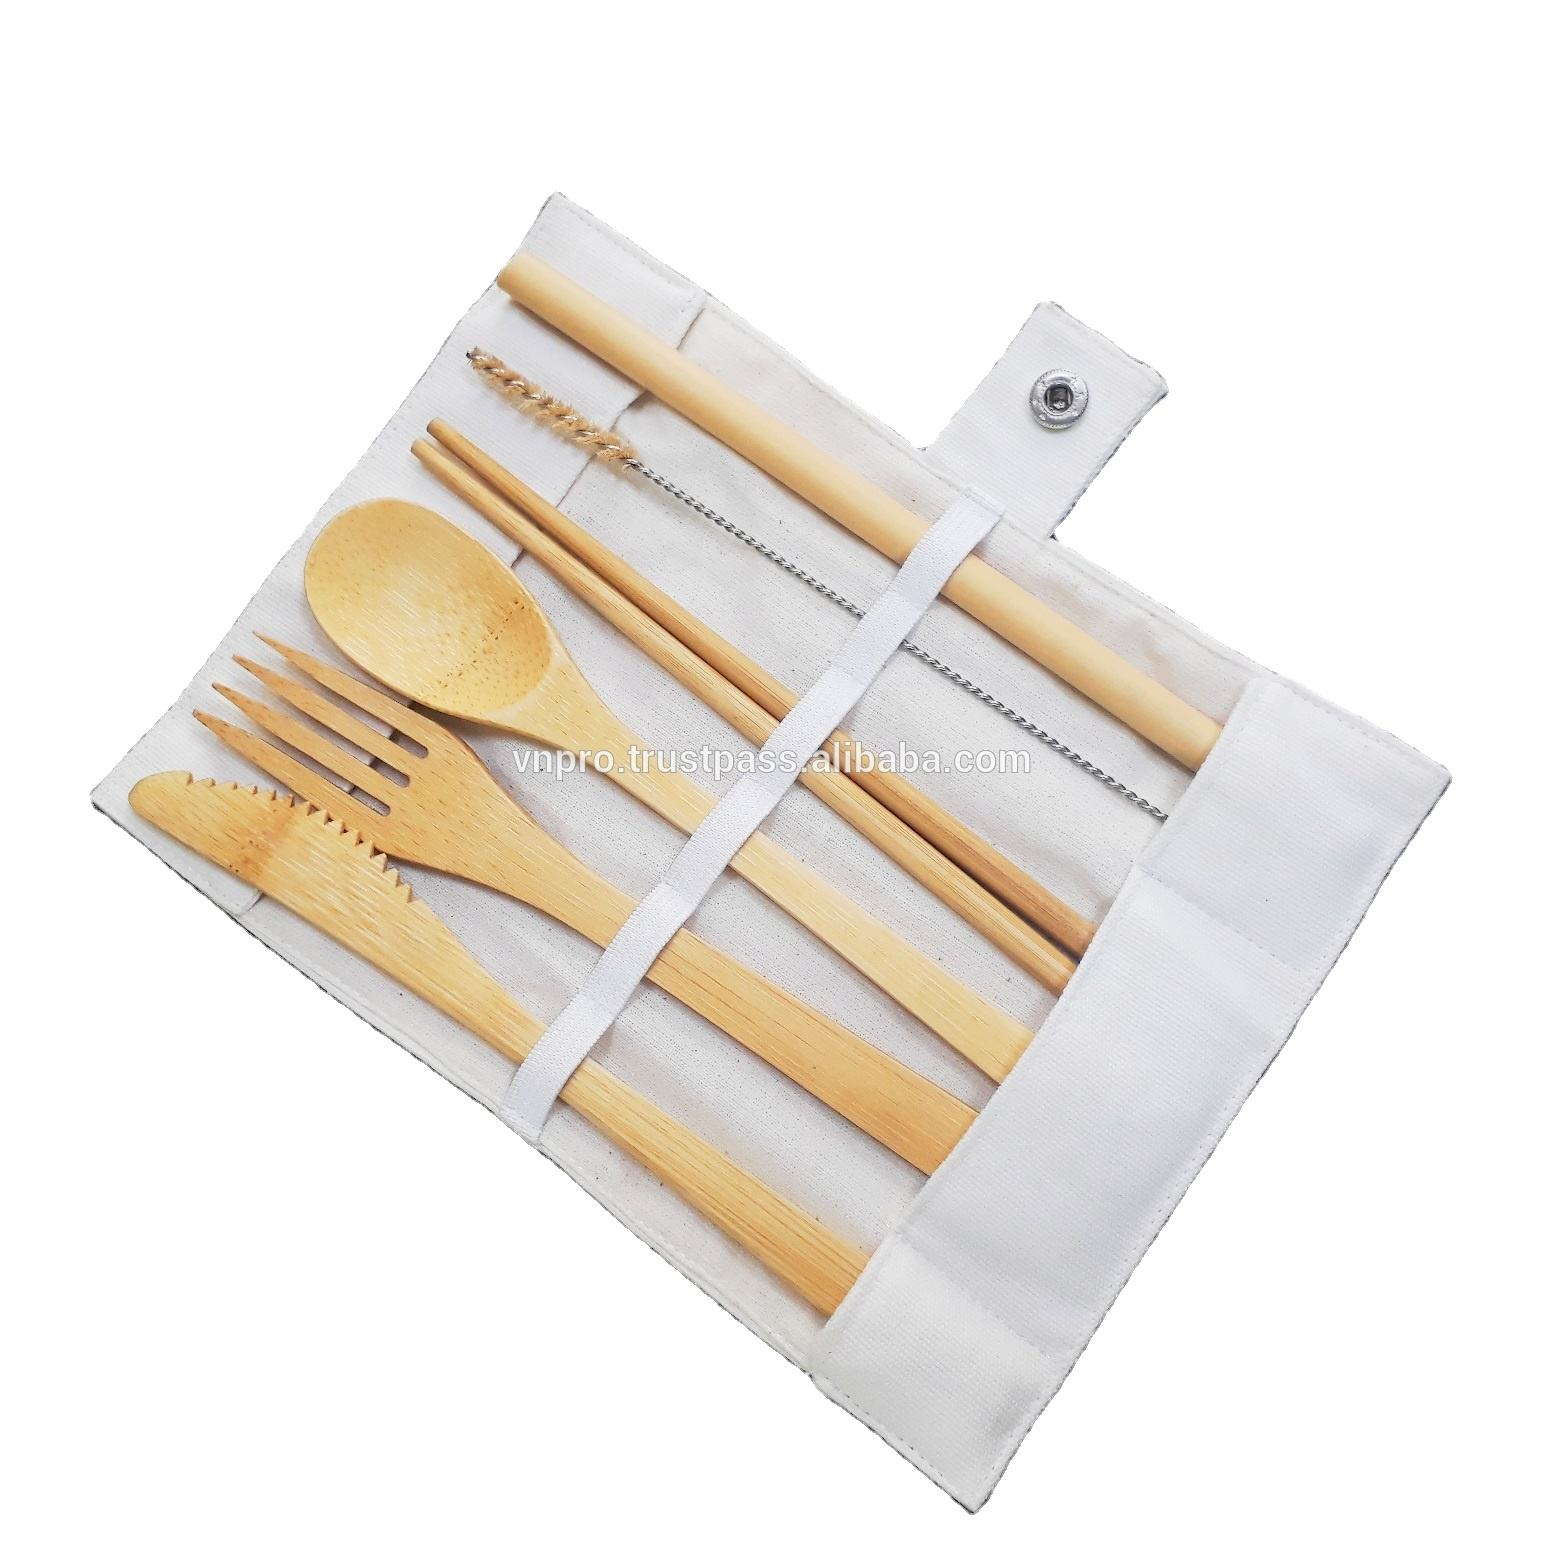 Home Party Travel Eco Friendly 7pcs Bamboo Cutlery Sets with Cloth bag Spoon Fork Knife Set Reusable Bamboo Cutlery Set